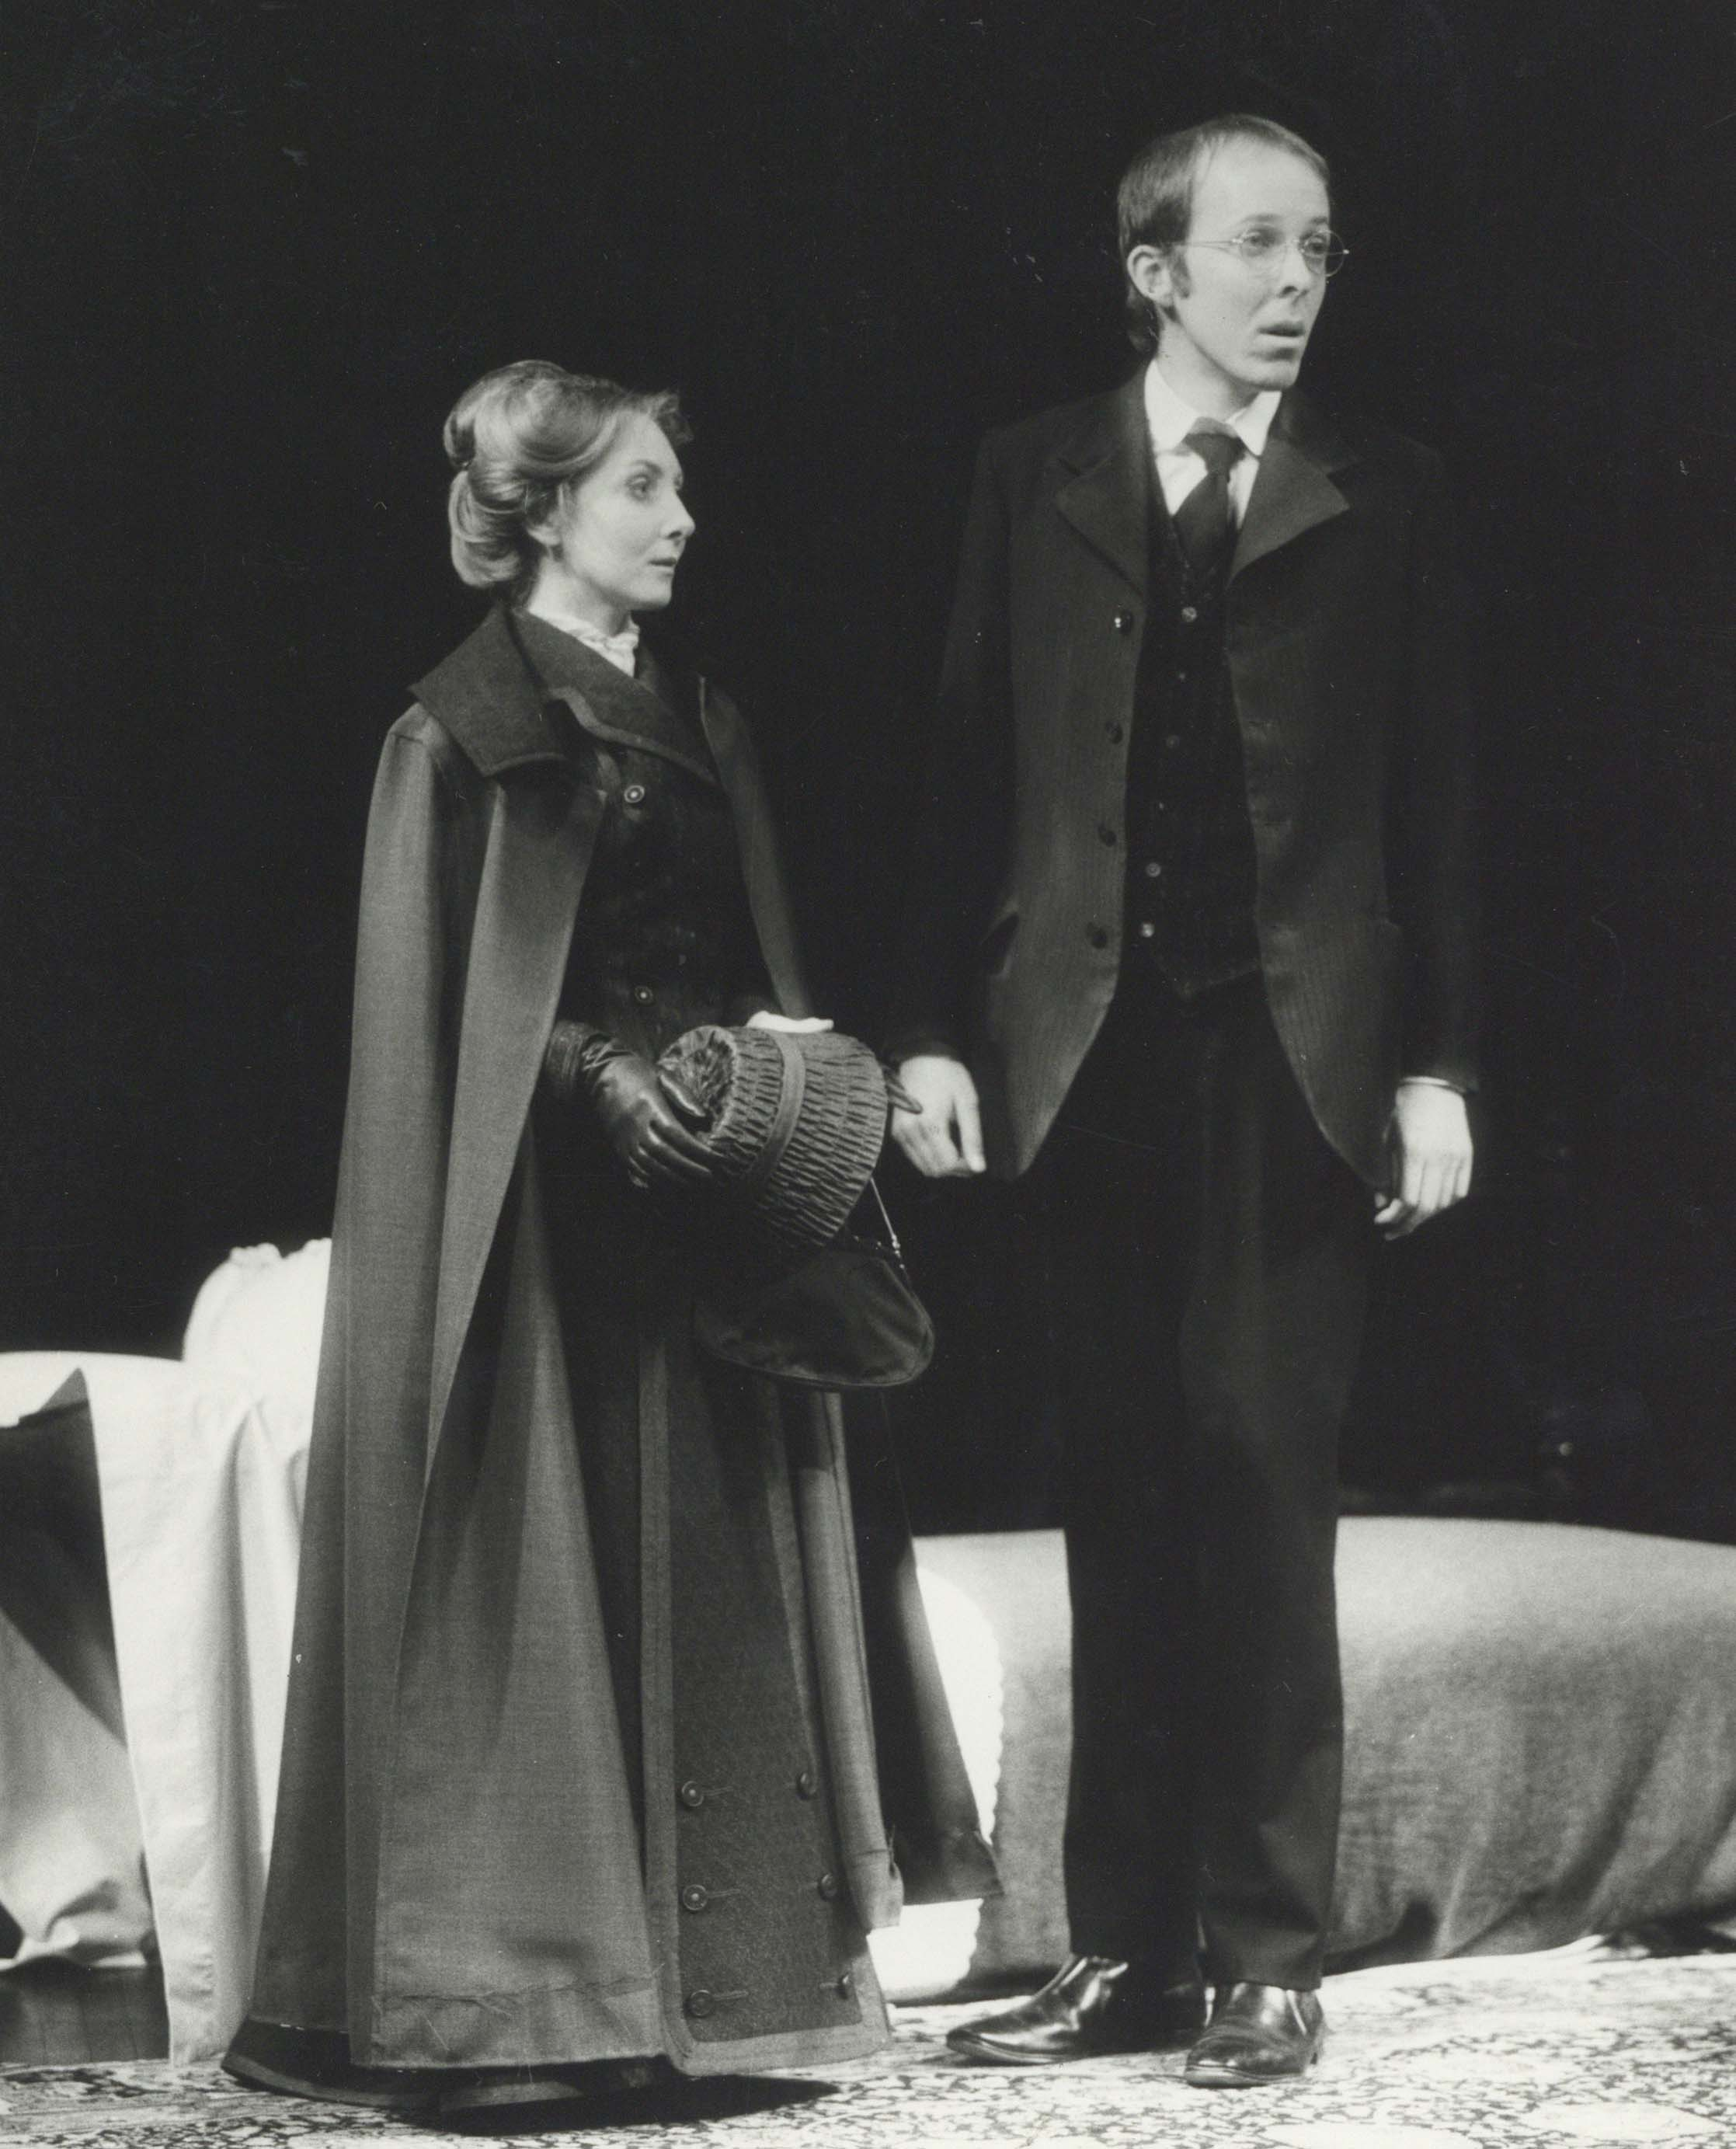 Production photograph - The Seagull - Maureen O'Brien, Peter Eyre - Photographer unknown - 1973 - Dimensions unknown